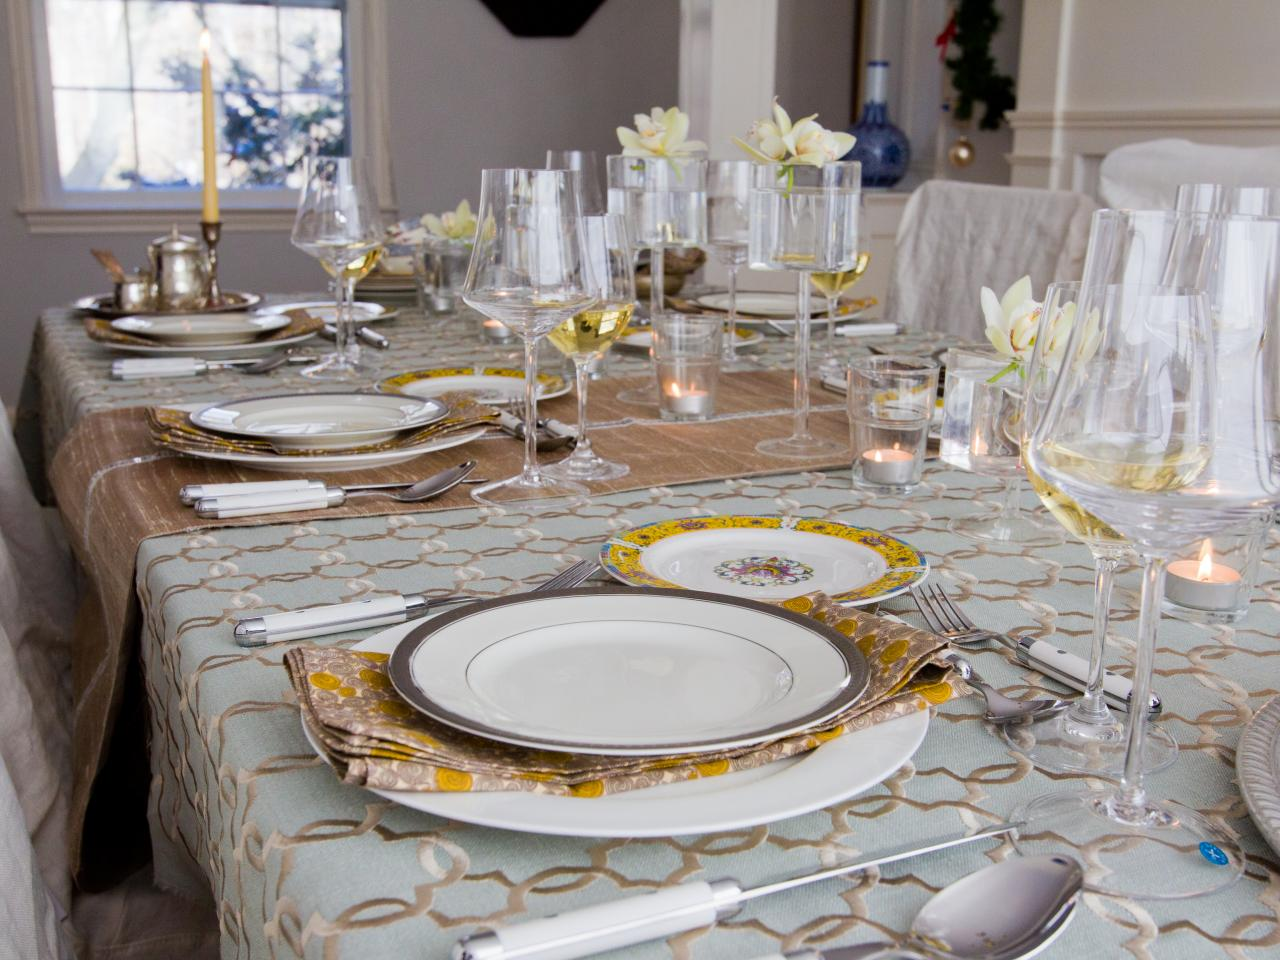 7 Creative Ways To Store Table Linens